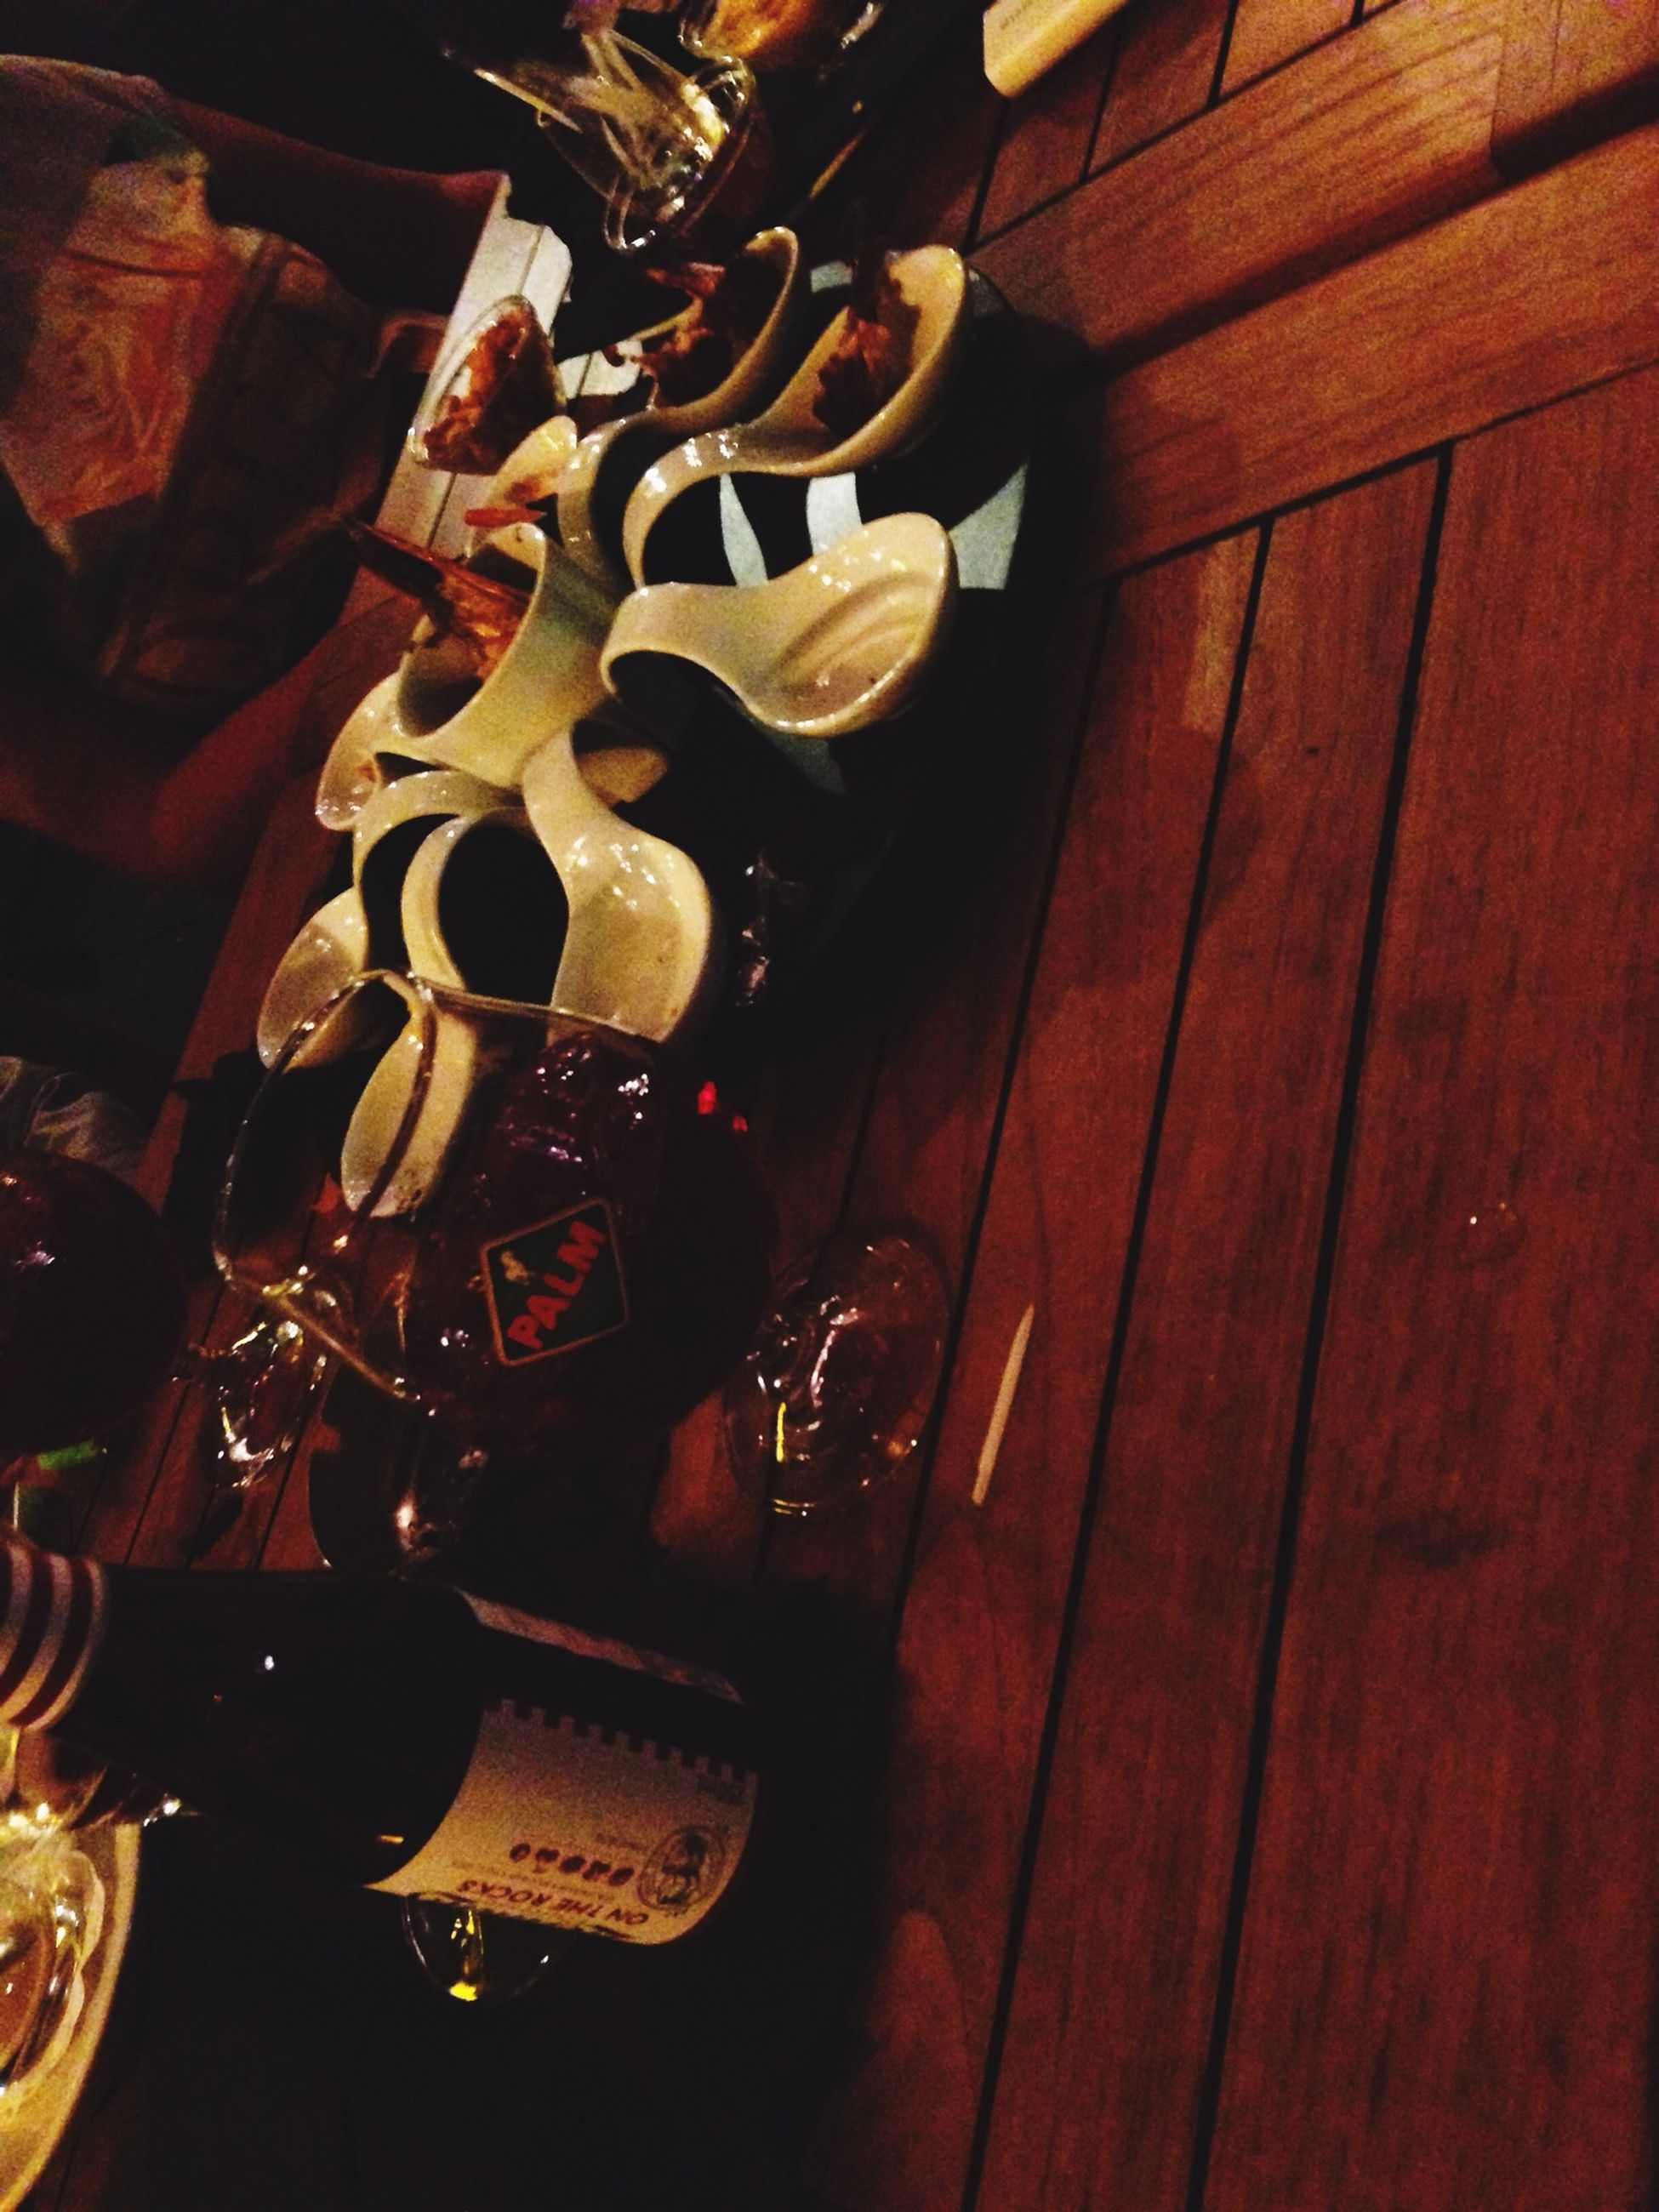 indoors, wood - material, still life, close-up, table, musical instrument, arts culture and entertainment, music, high angle view, old-fashioned, no people, art and craft, antique, metal, equipment, wooden, focus on foreground, variation, home interior, decoration